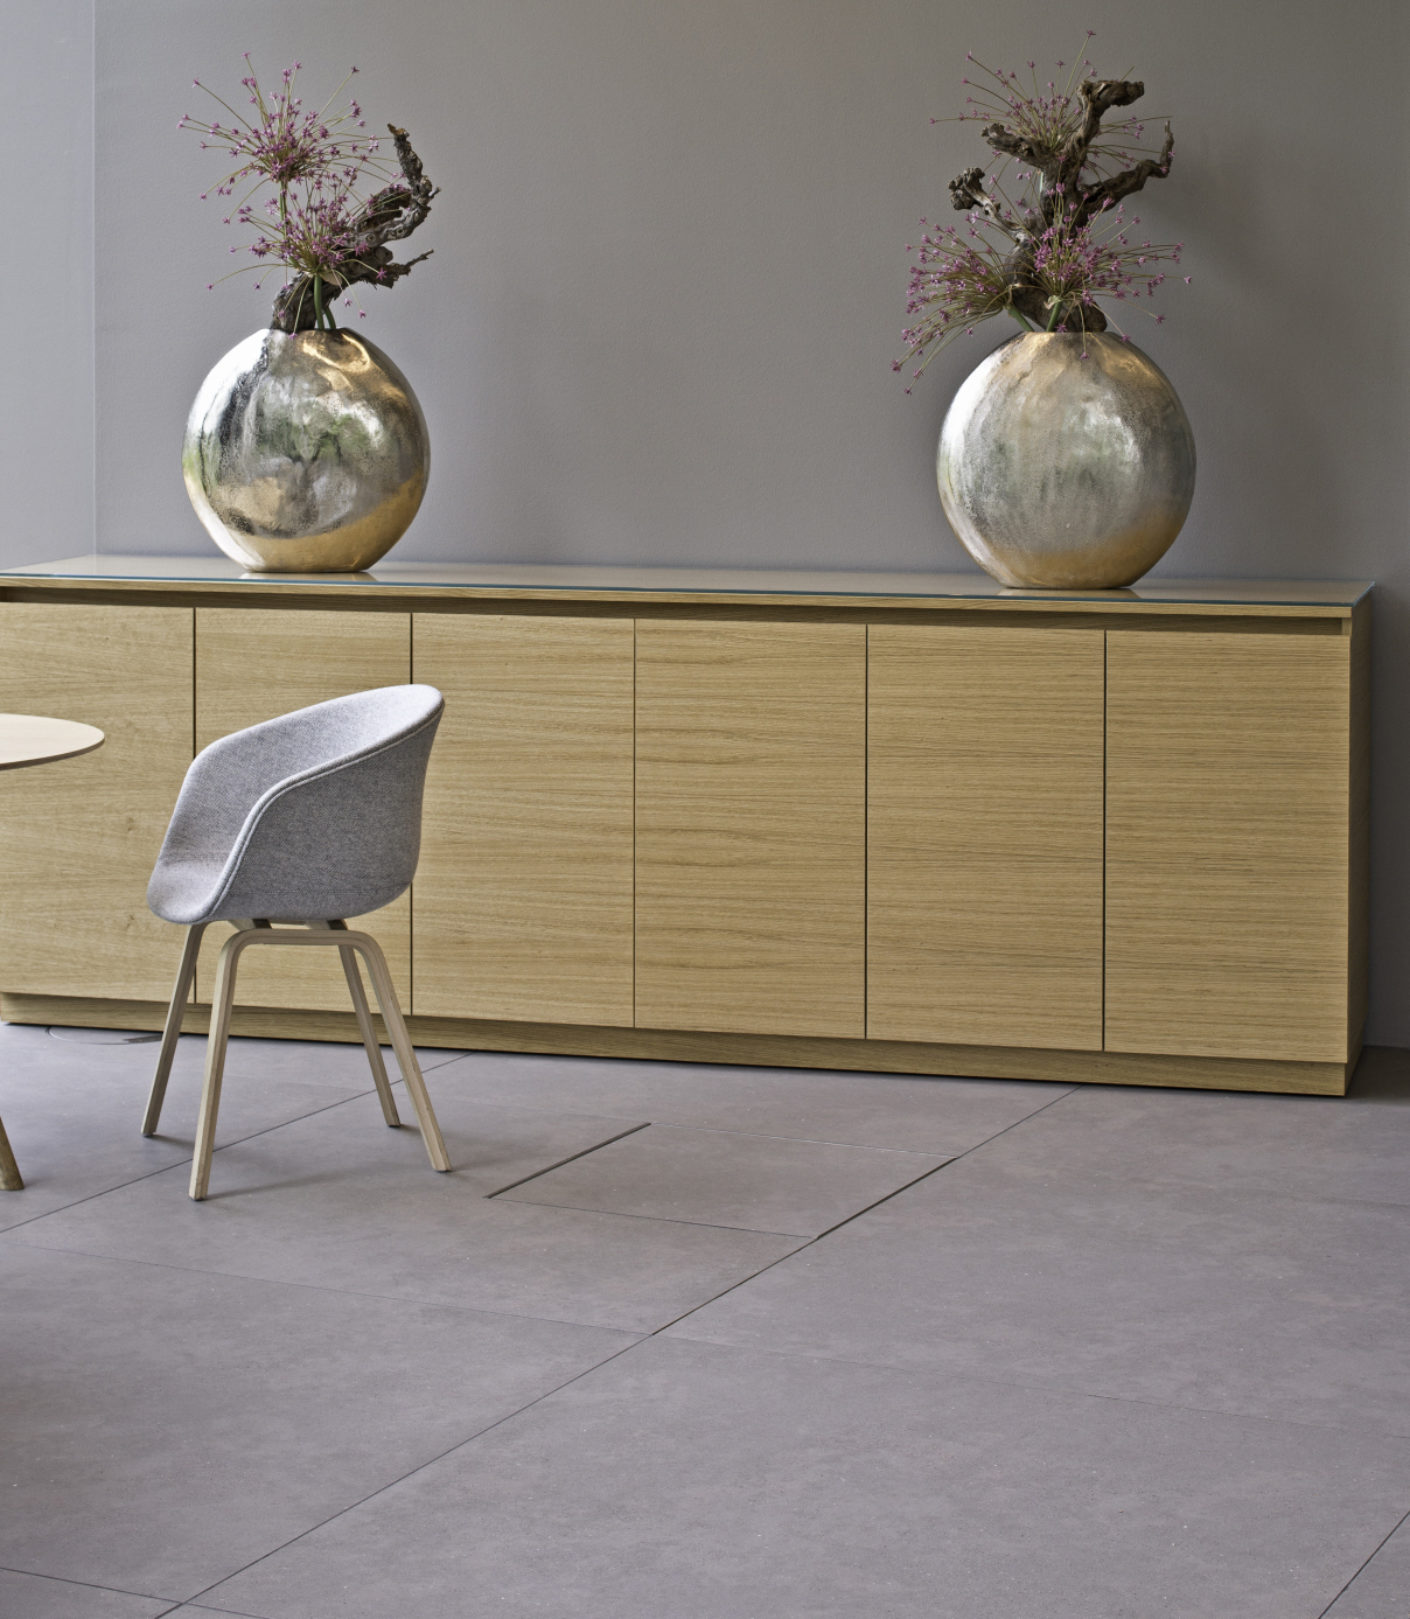 The Nortec raised floorings and large ceramic tiles from Lindner are highly durable.